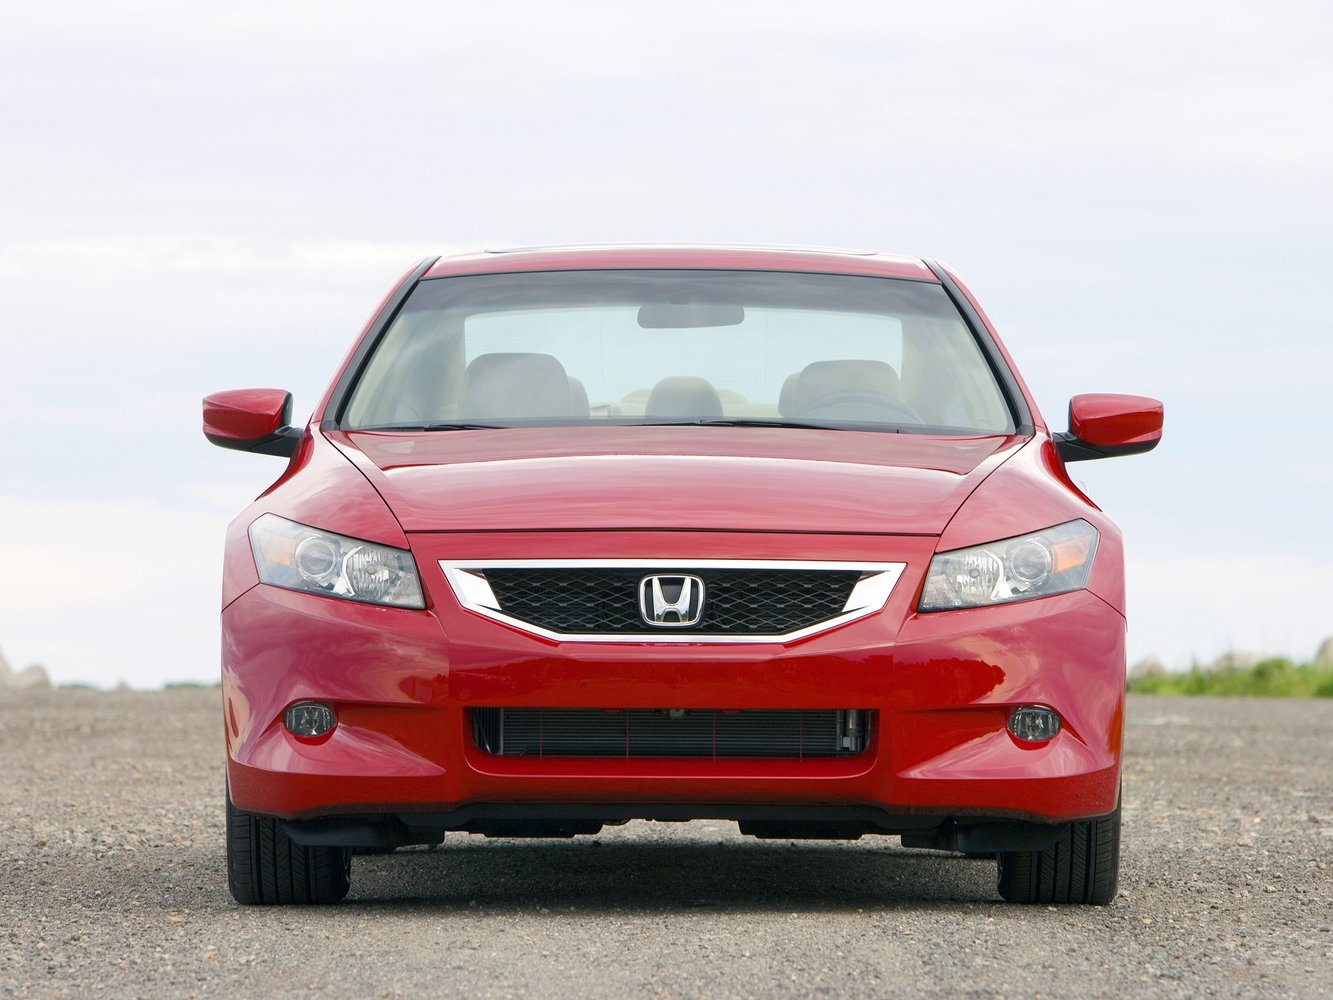 купе Honda Accord 2008 - 2011г выпуска модификация 2.4 AT (190 л.с.)